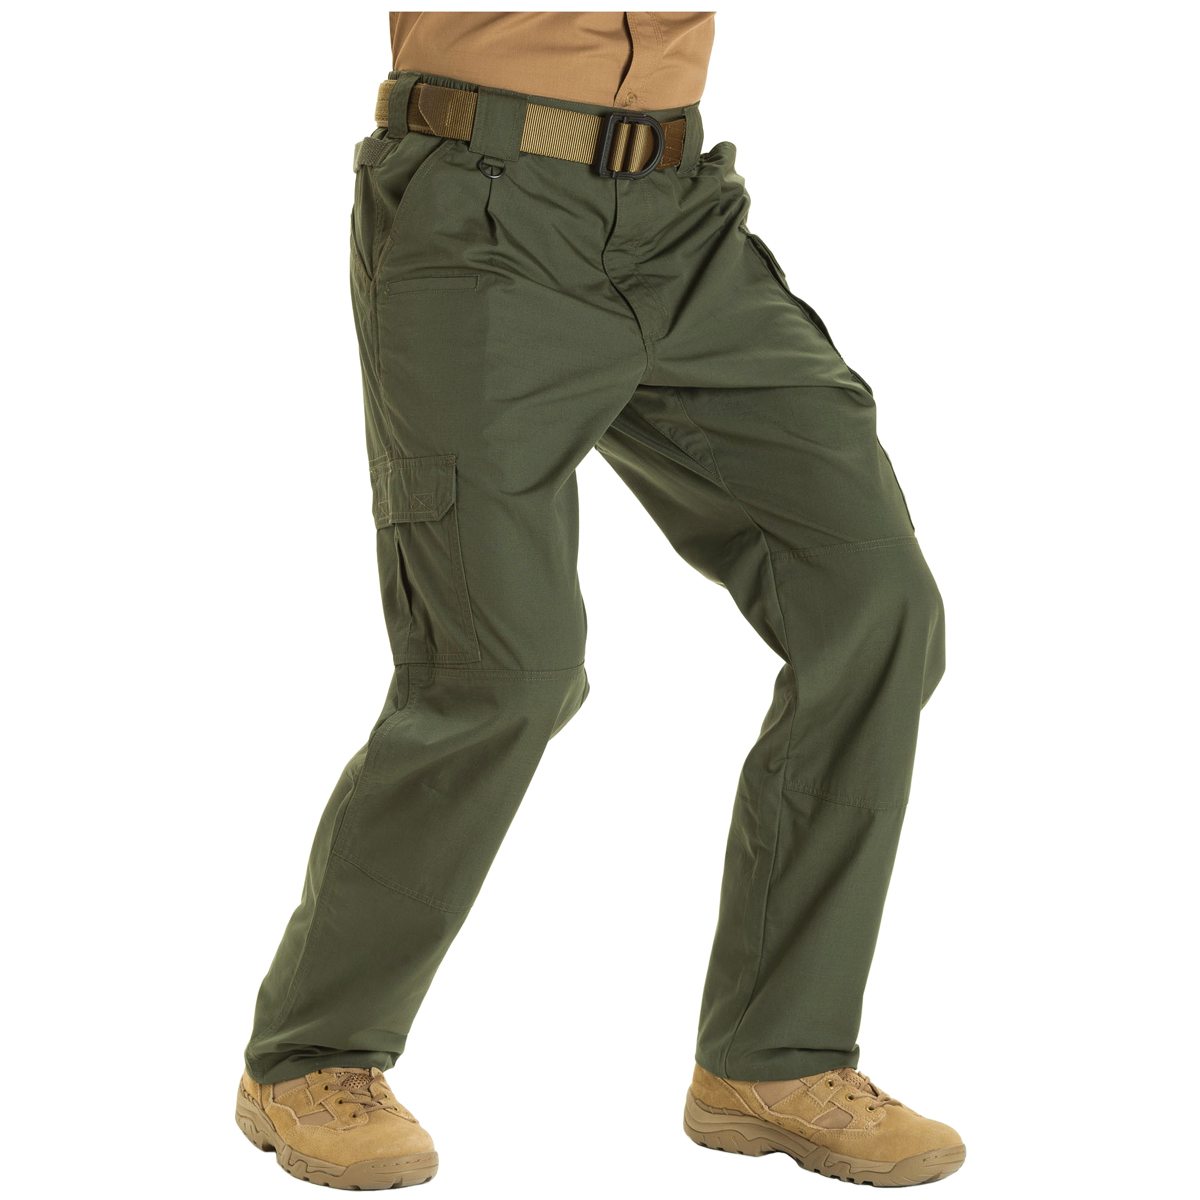 Free shipping BOTH ways on Pants, Green, Men, from our vast selection of styles. Fast delivery, and 24/7/ real-person service with a smile. Click or call